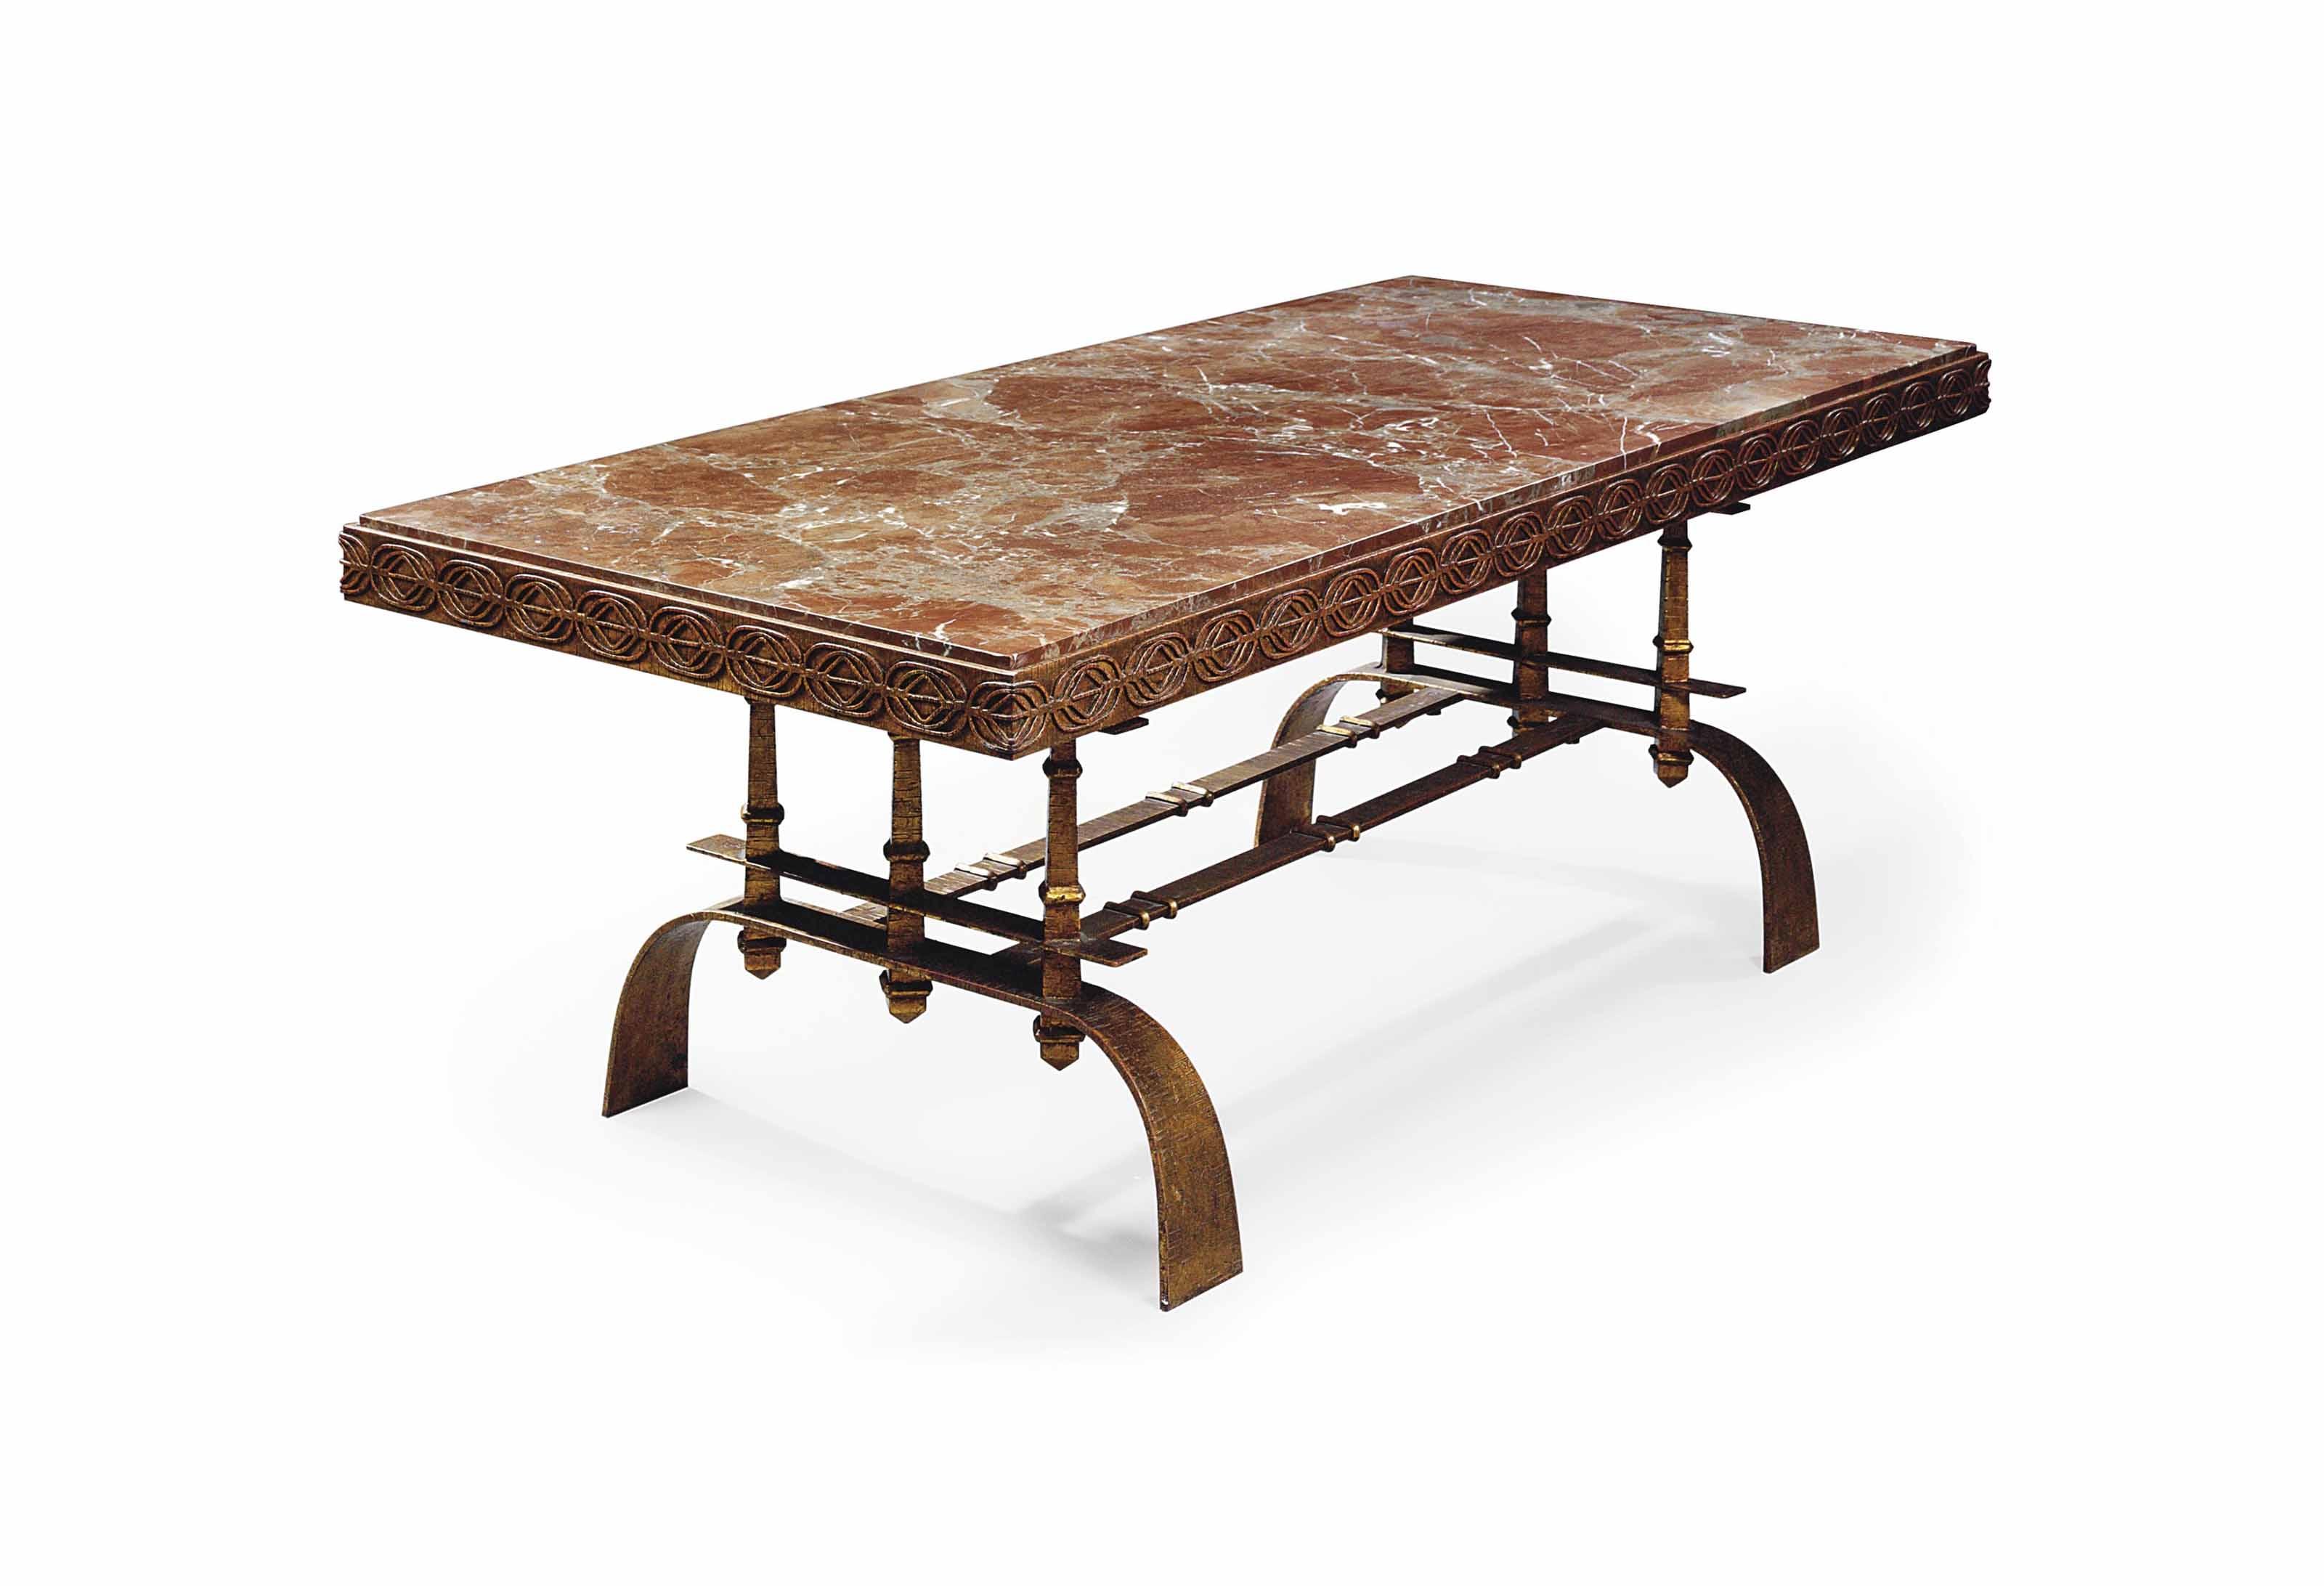 A JAMES MONT MARBLE AND WROUGHT-IRON DINING TABLE